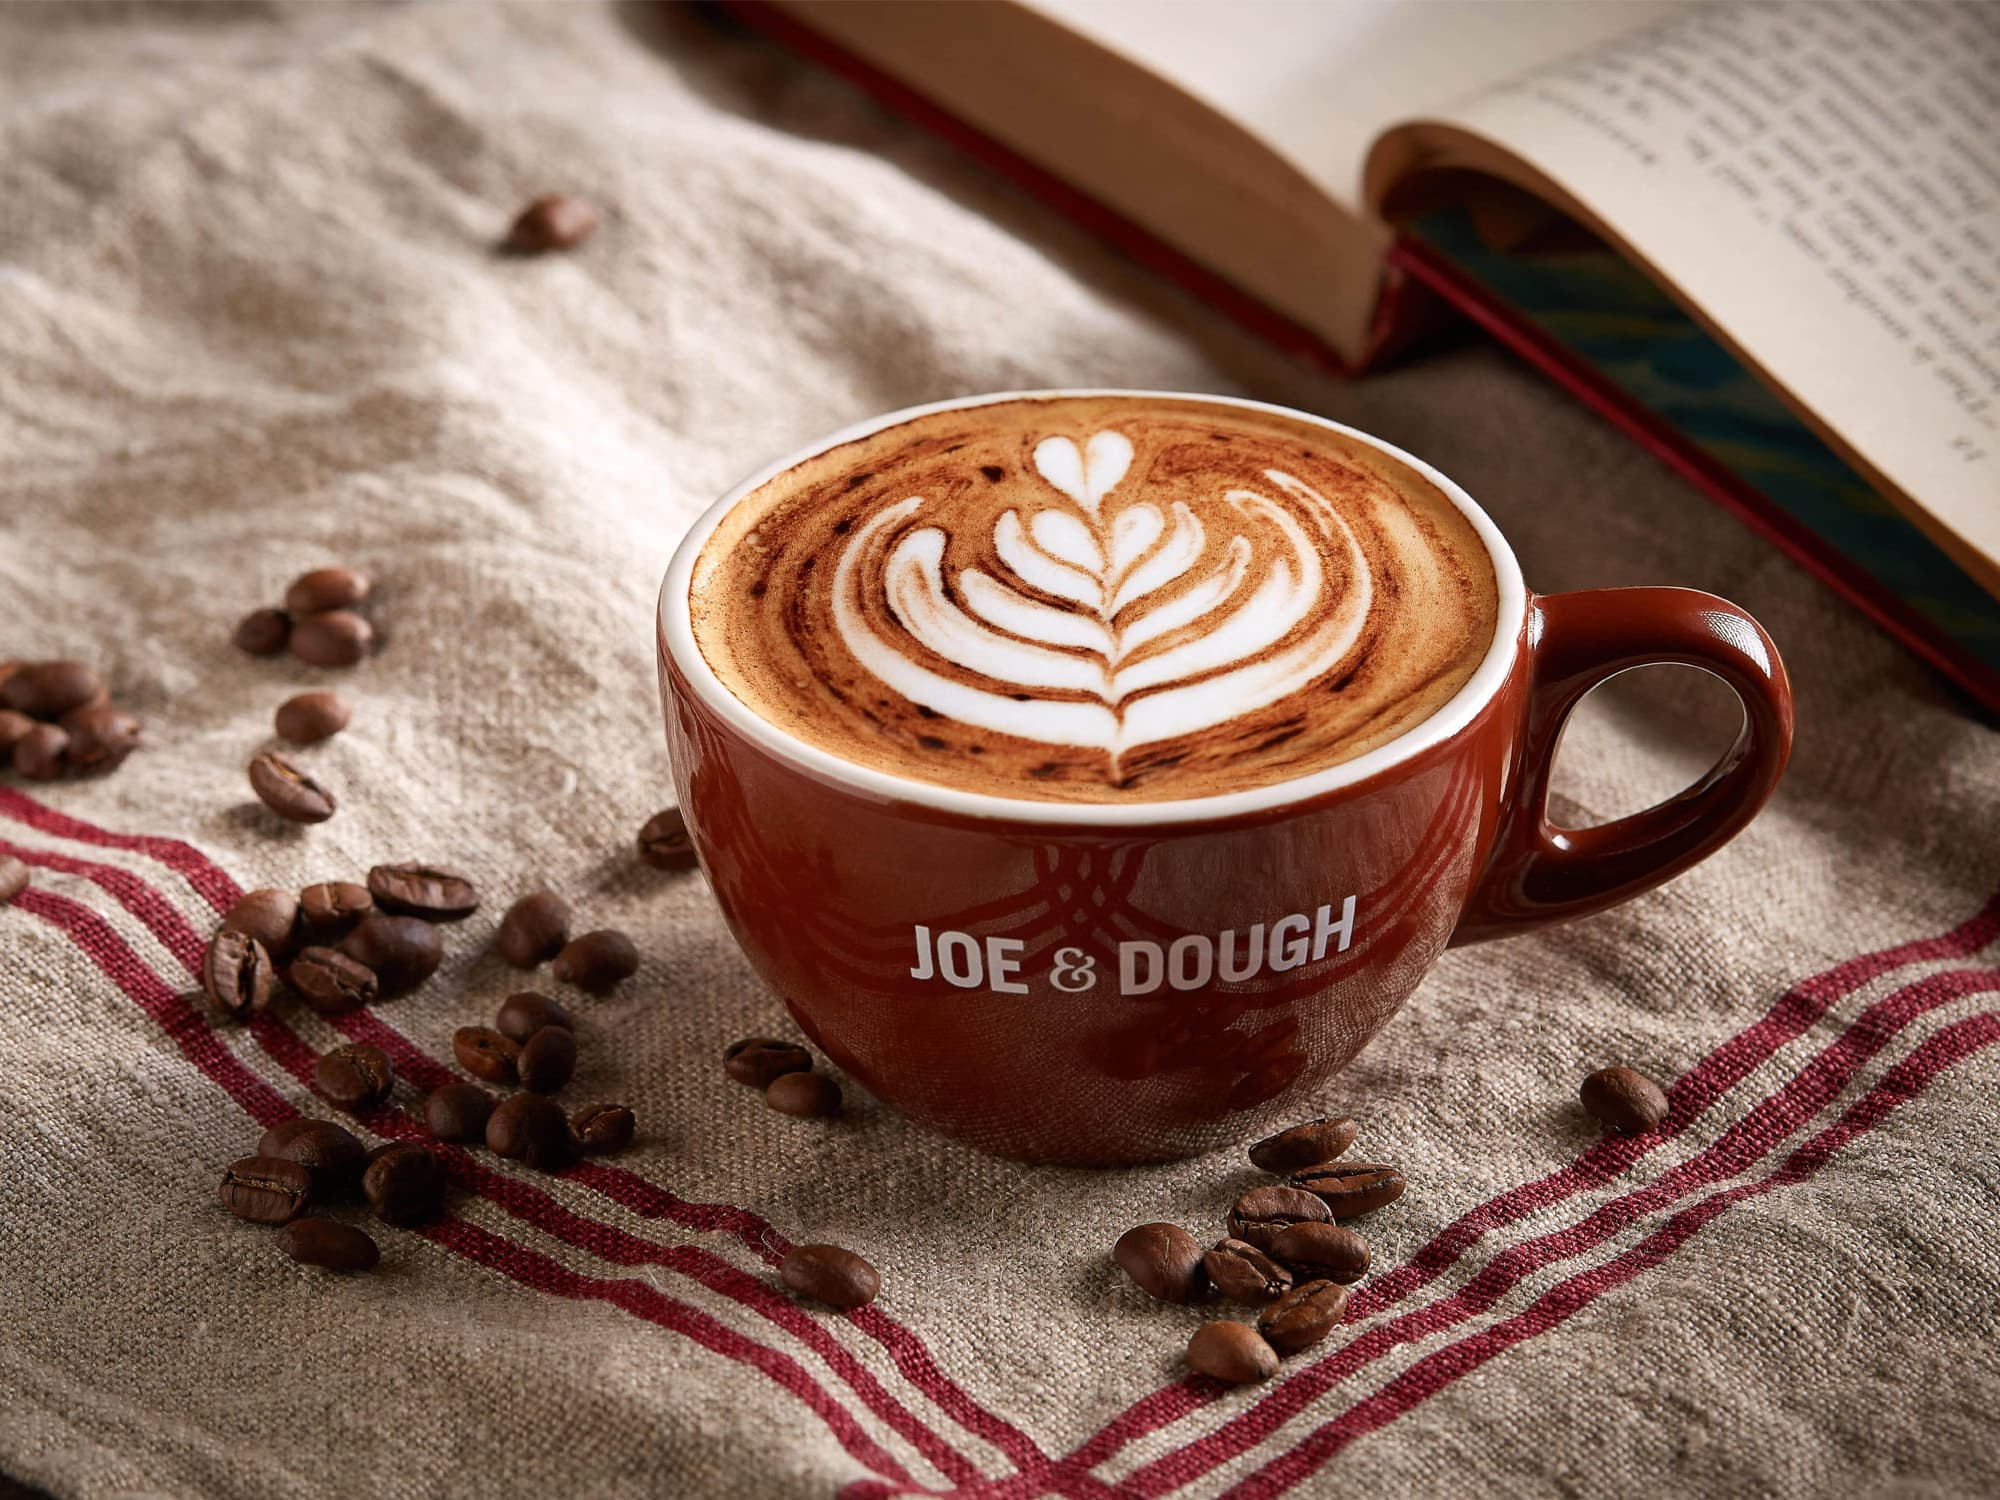 1 x Large Hot Caffe Latte / Cappuccino / Flat White / Americano (Takeaway) [Exclusive Deal]